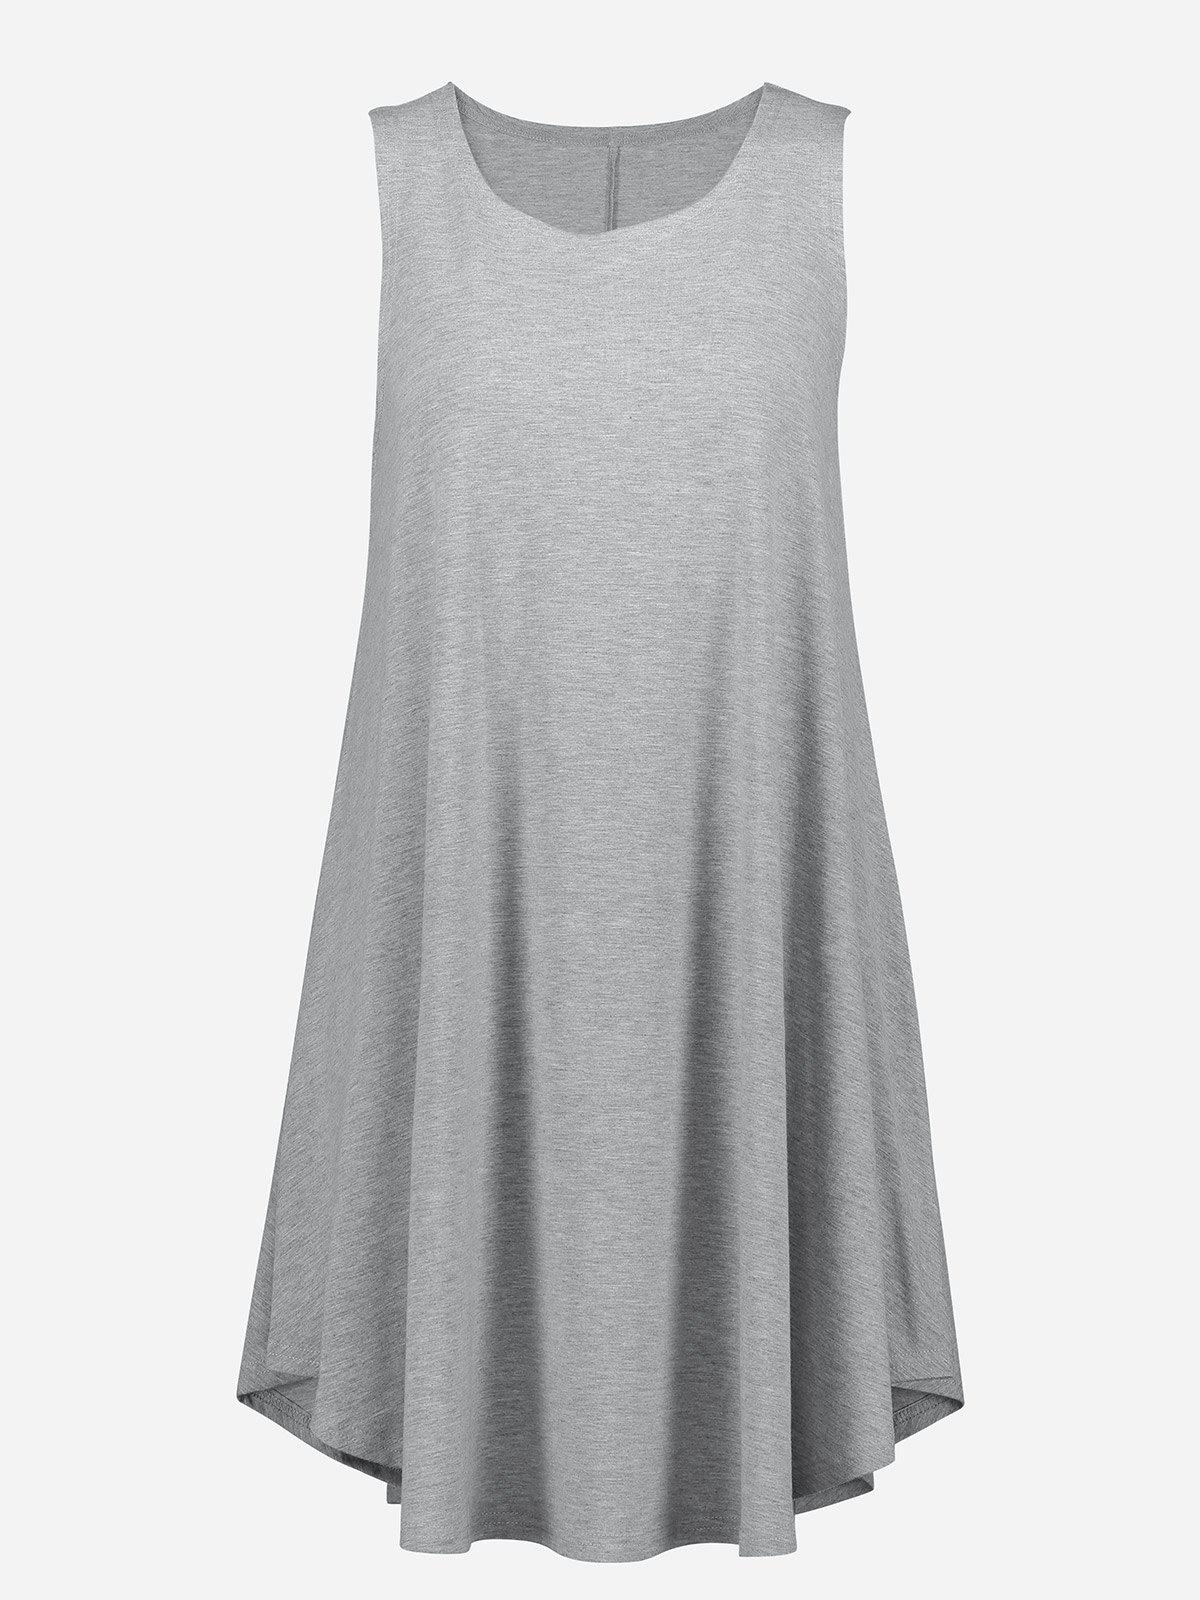 New Sleeveless Swing Tunic Dress Tank Top